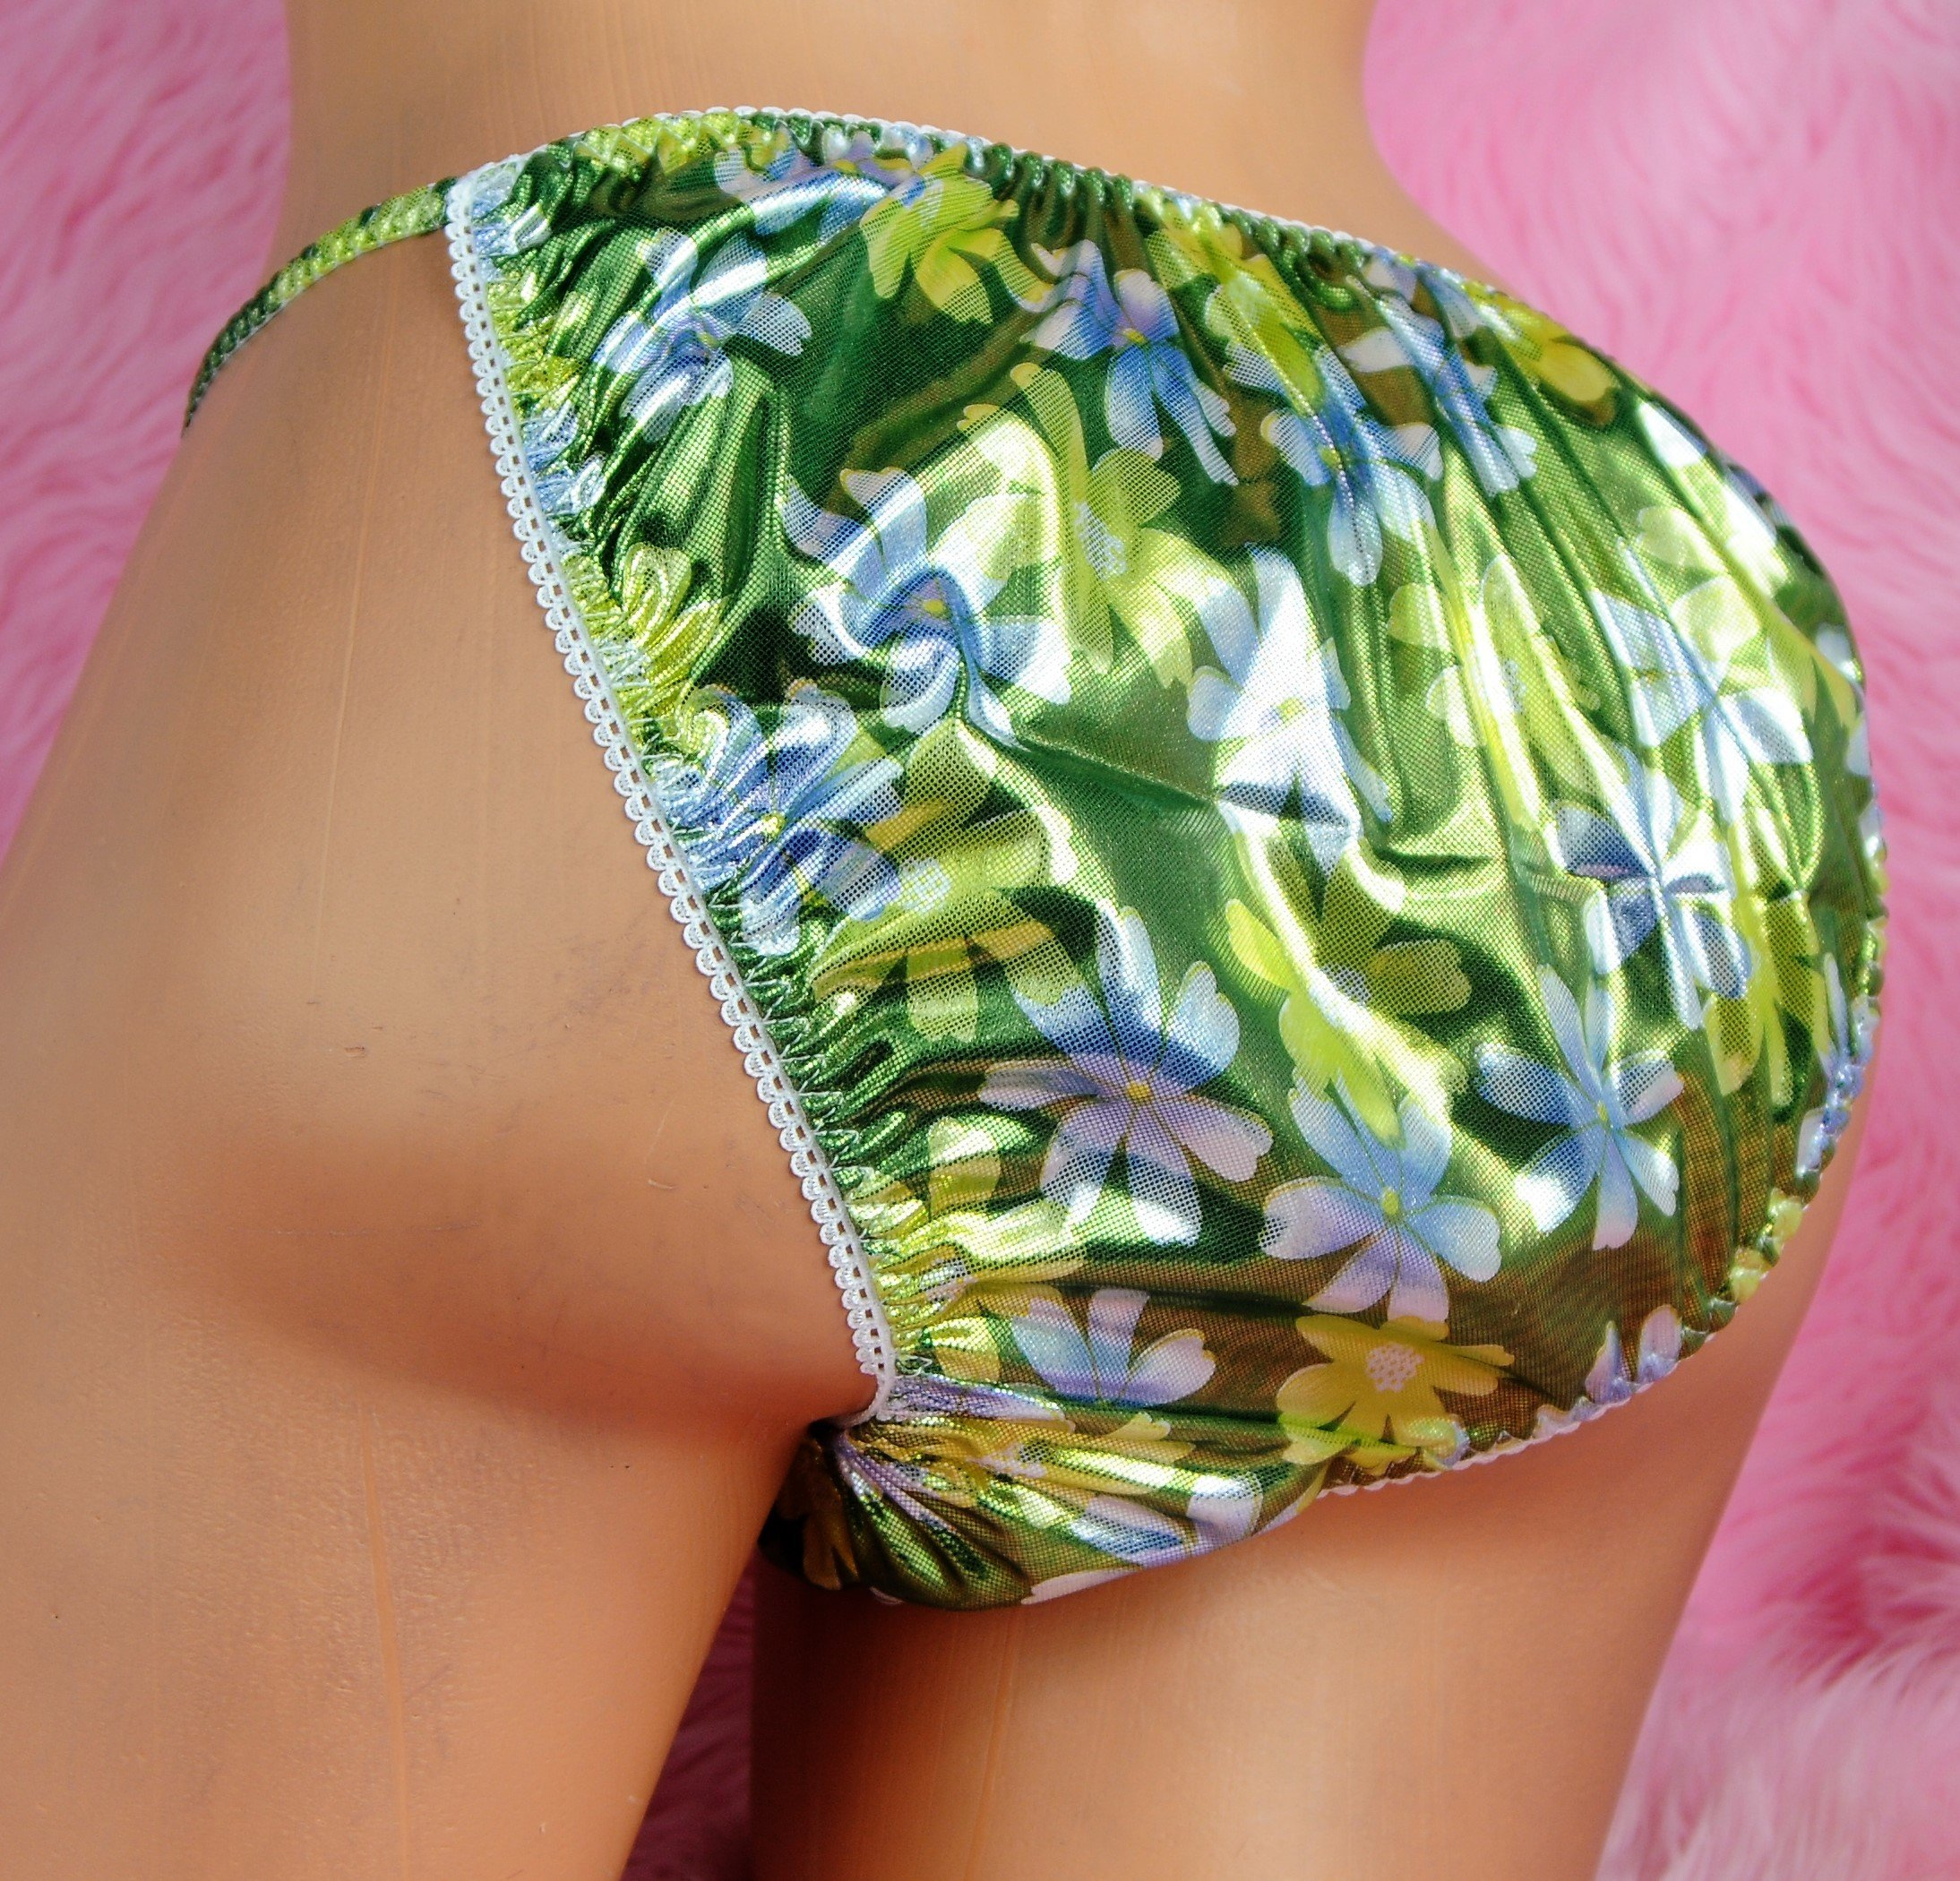 Ultra Rare Limited Edition MANties Out of stock fabrics mens foil string bikini panties L/XL